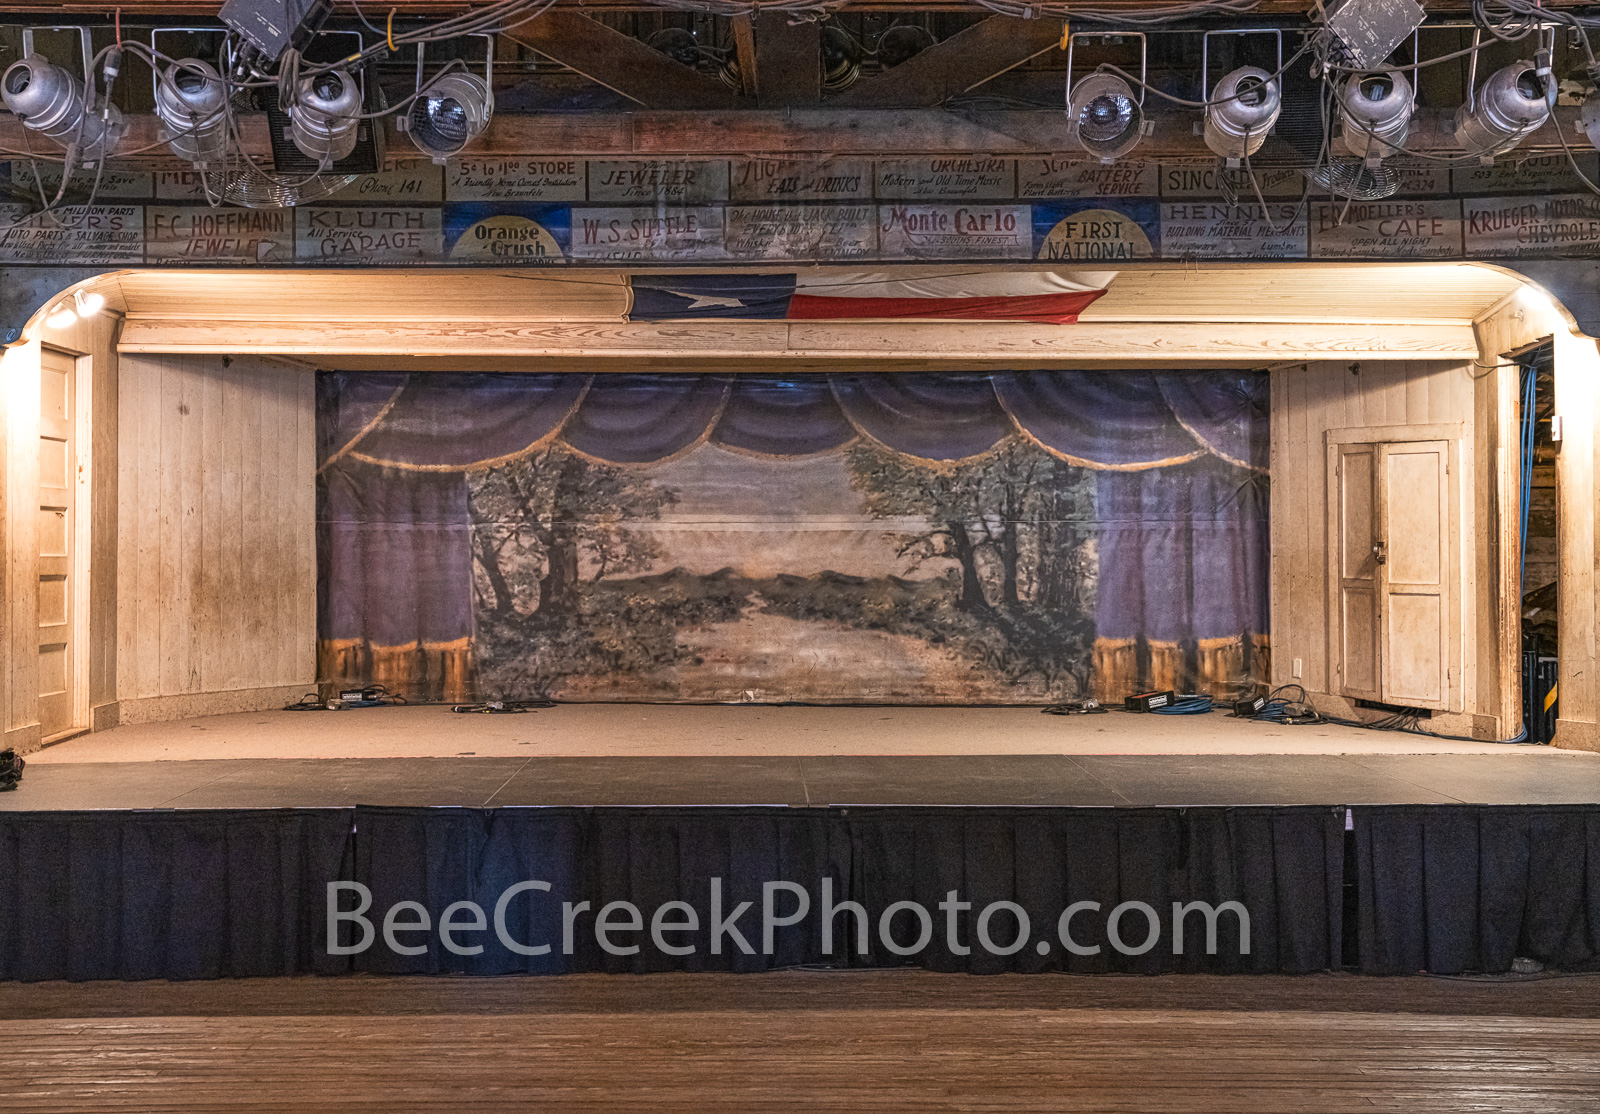 gruene hall, stage, dance floor, gruene saloon, gruene texas, dance hall, saloon, town, two stepping, community, earnest gruene, german, german town, texas, texas hill country, visit, national registe, photo